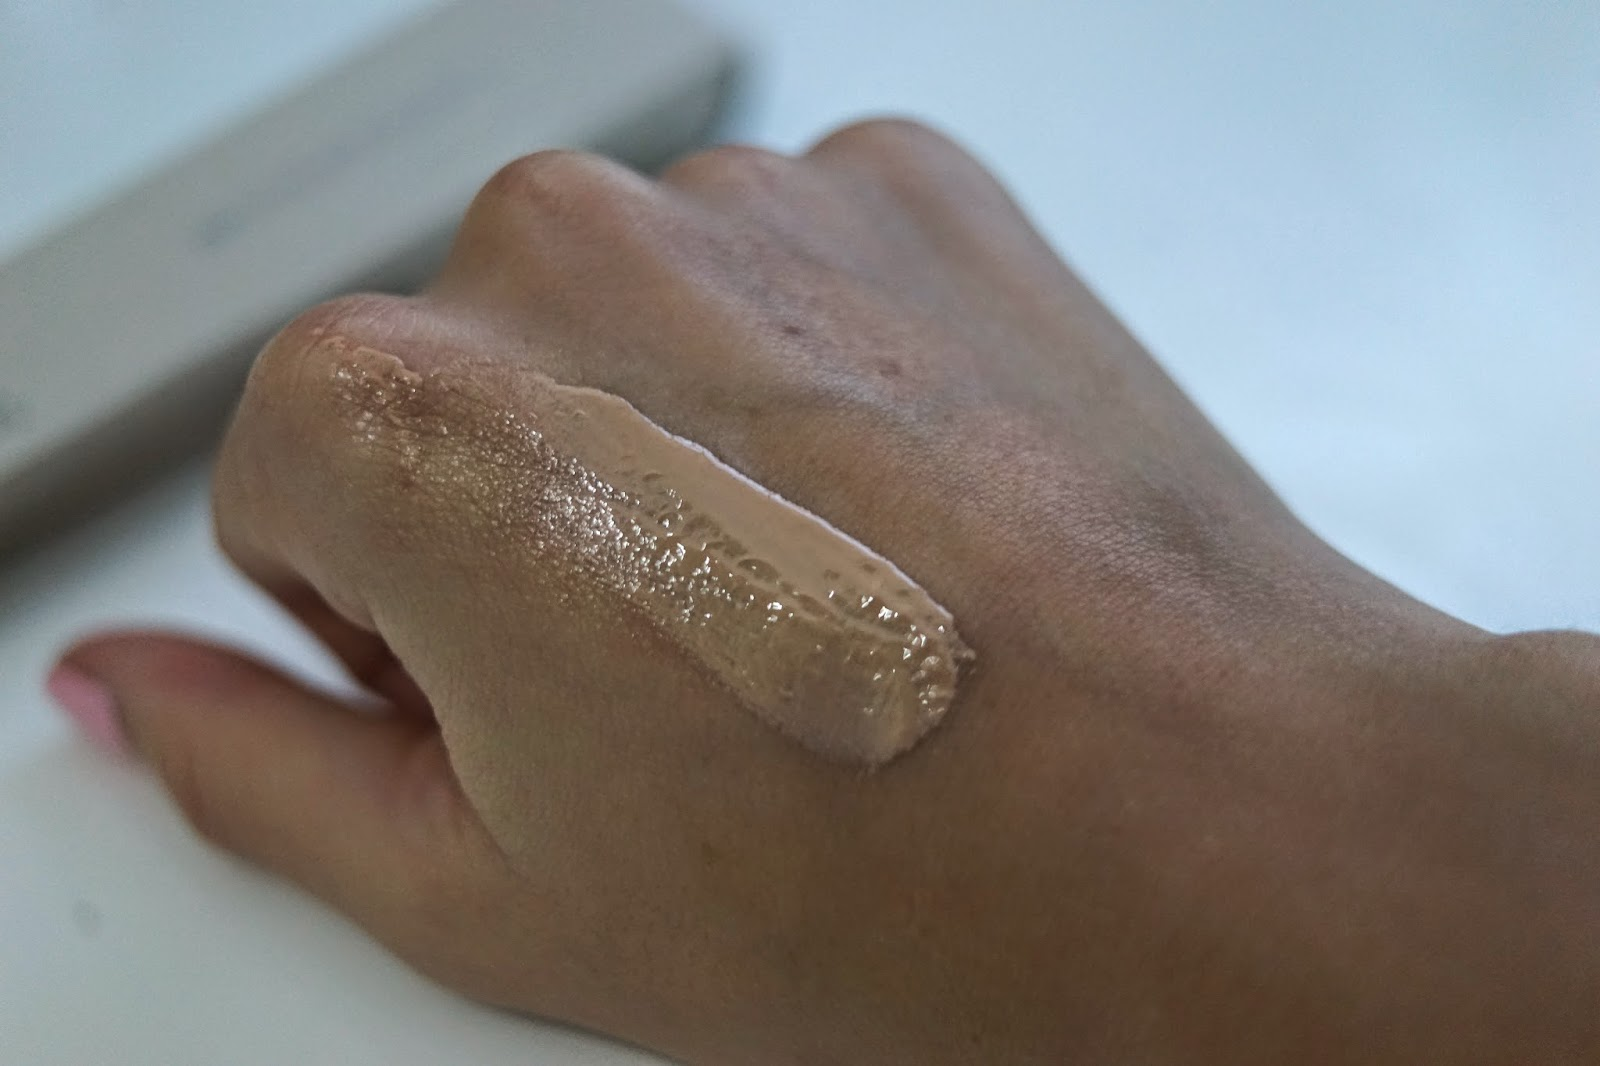 Burberry fresh glow BB cream swatch